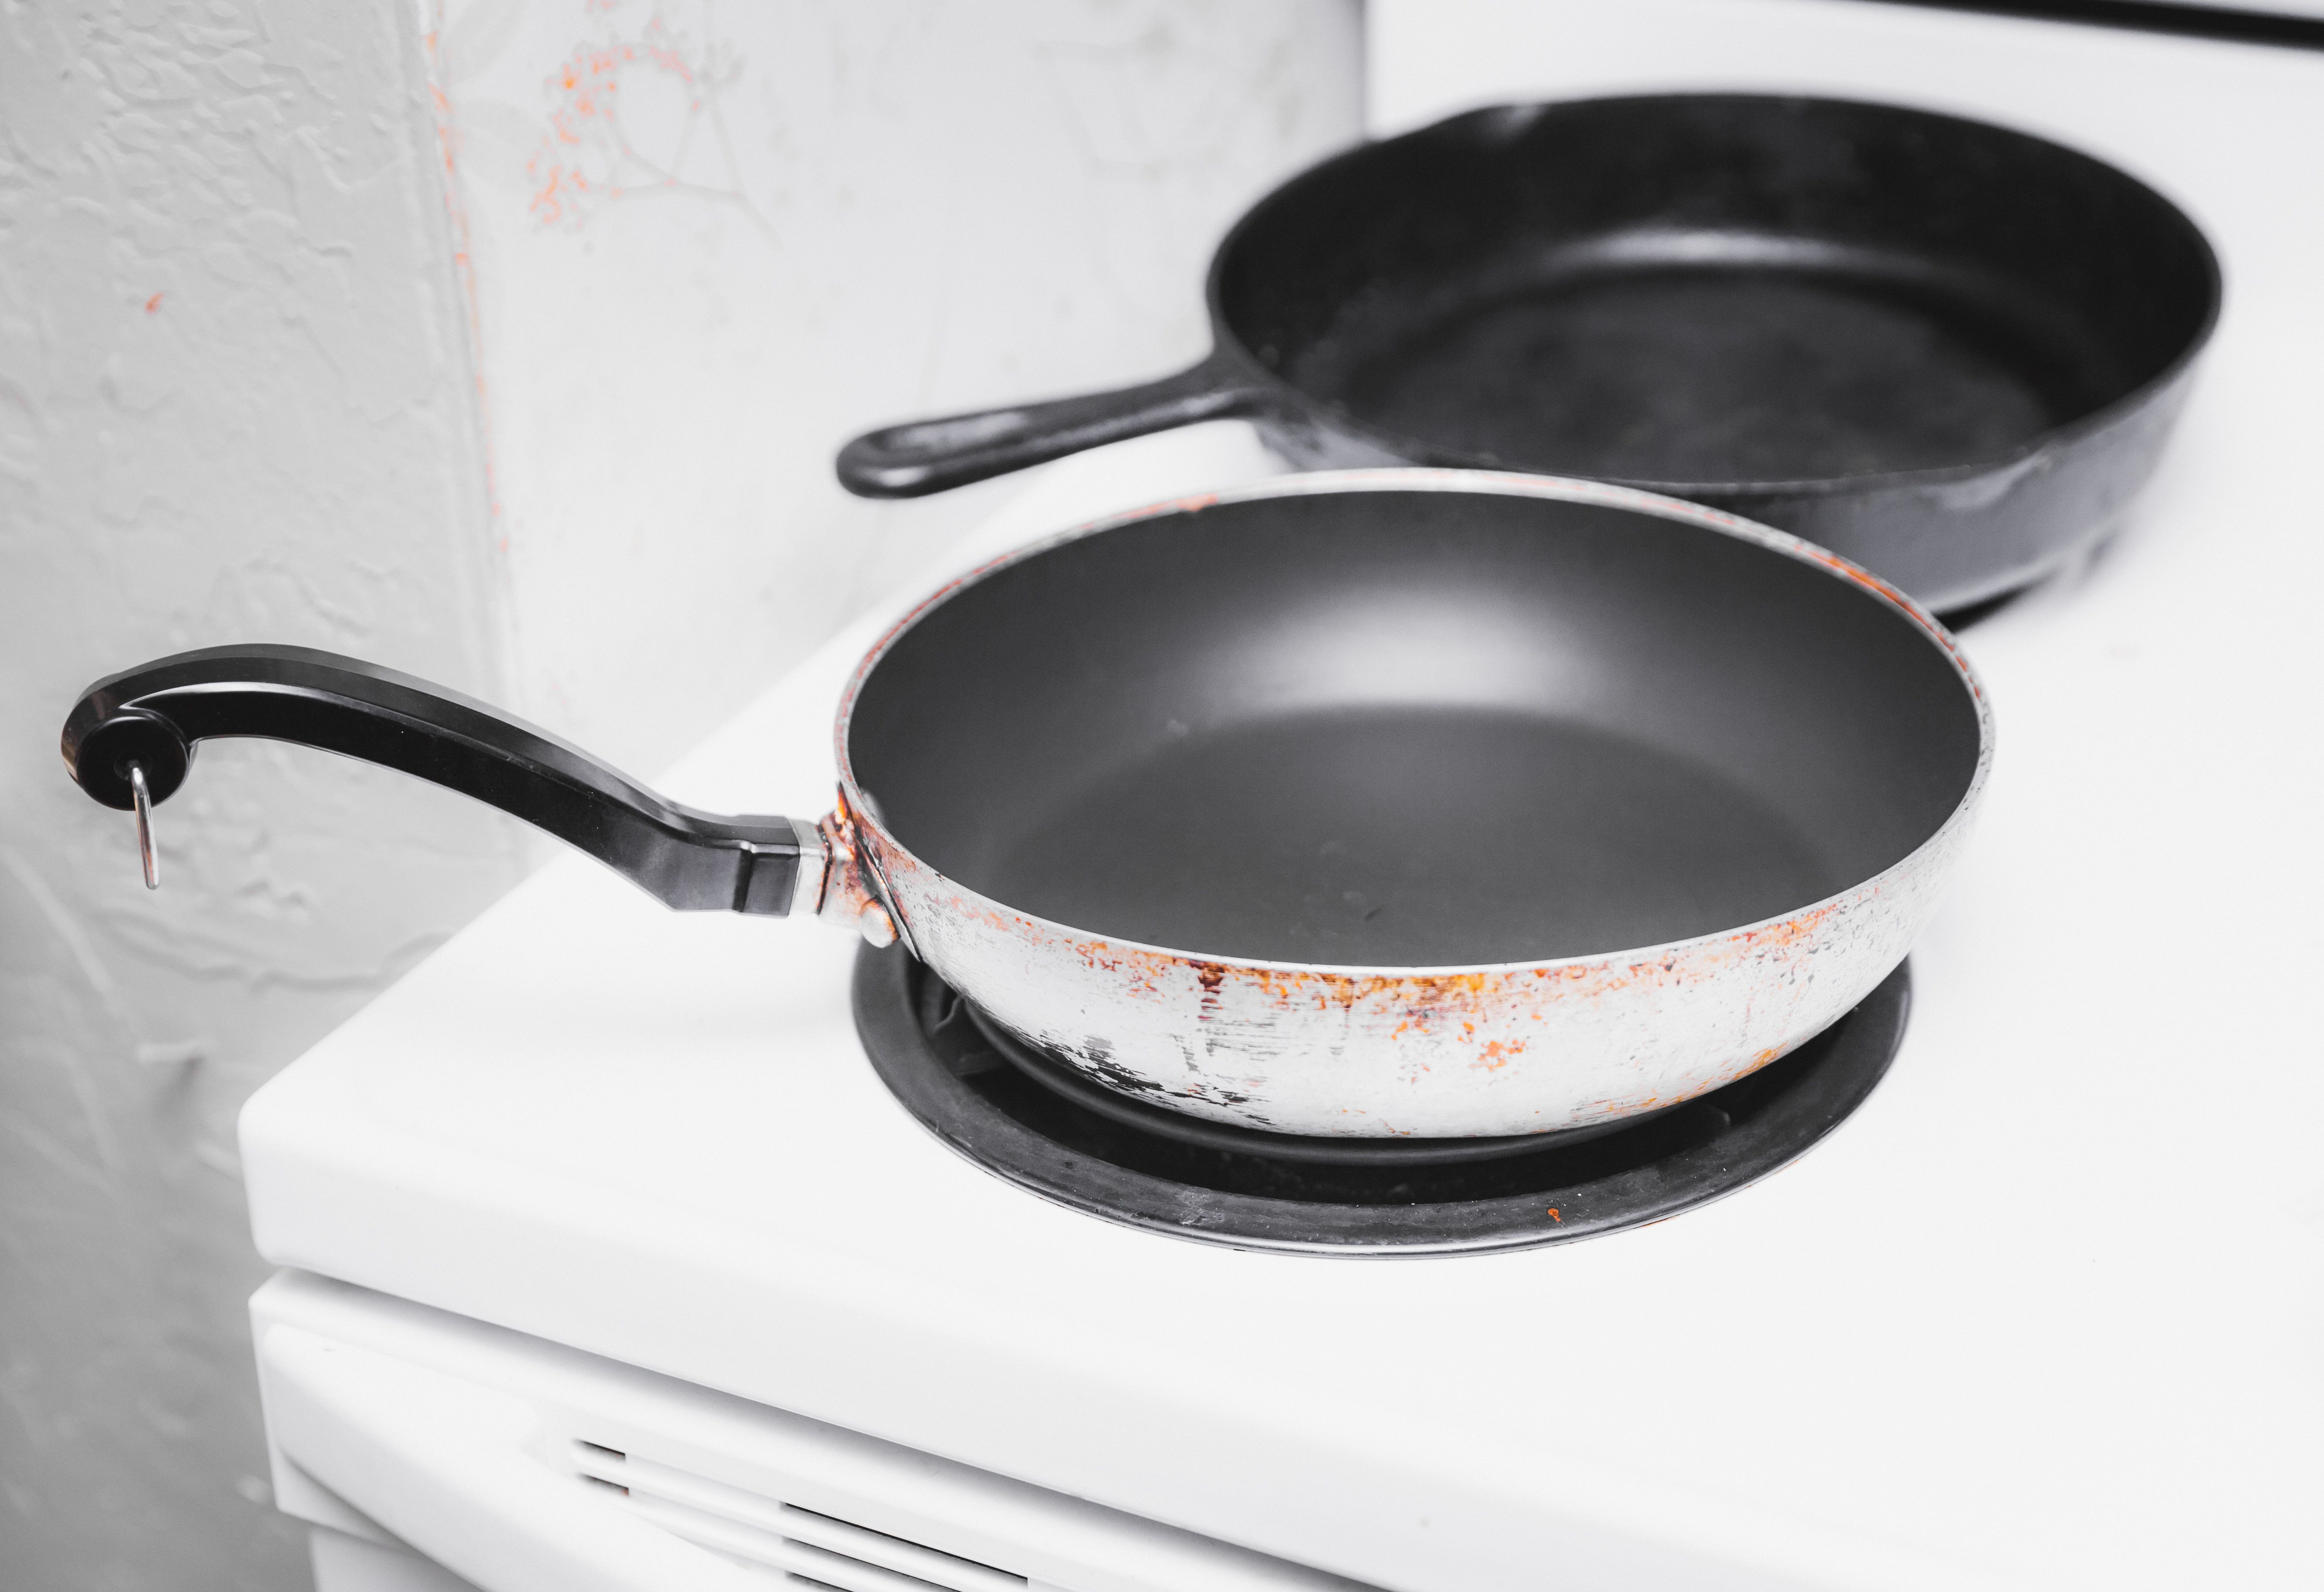 Non-Stick Pan Chemicals Have Been Linked To Smaller Penises And We Have So Many